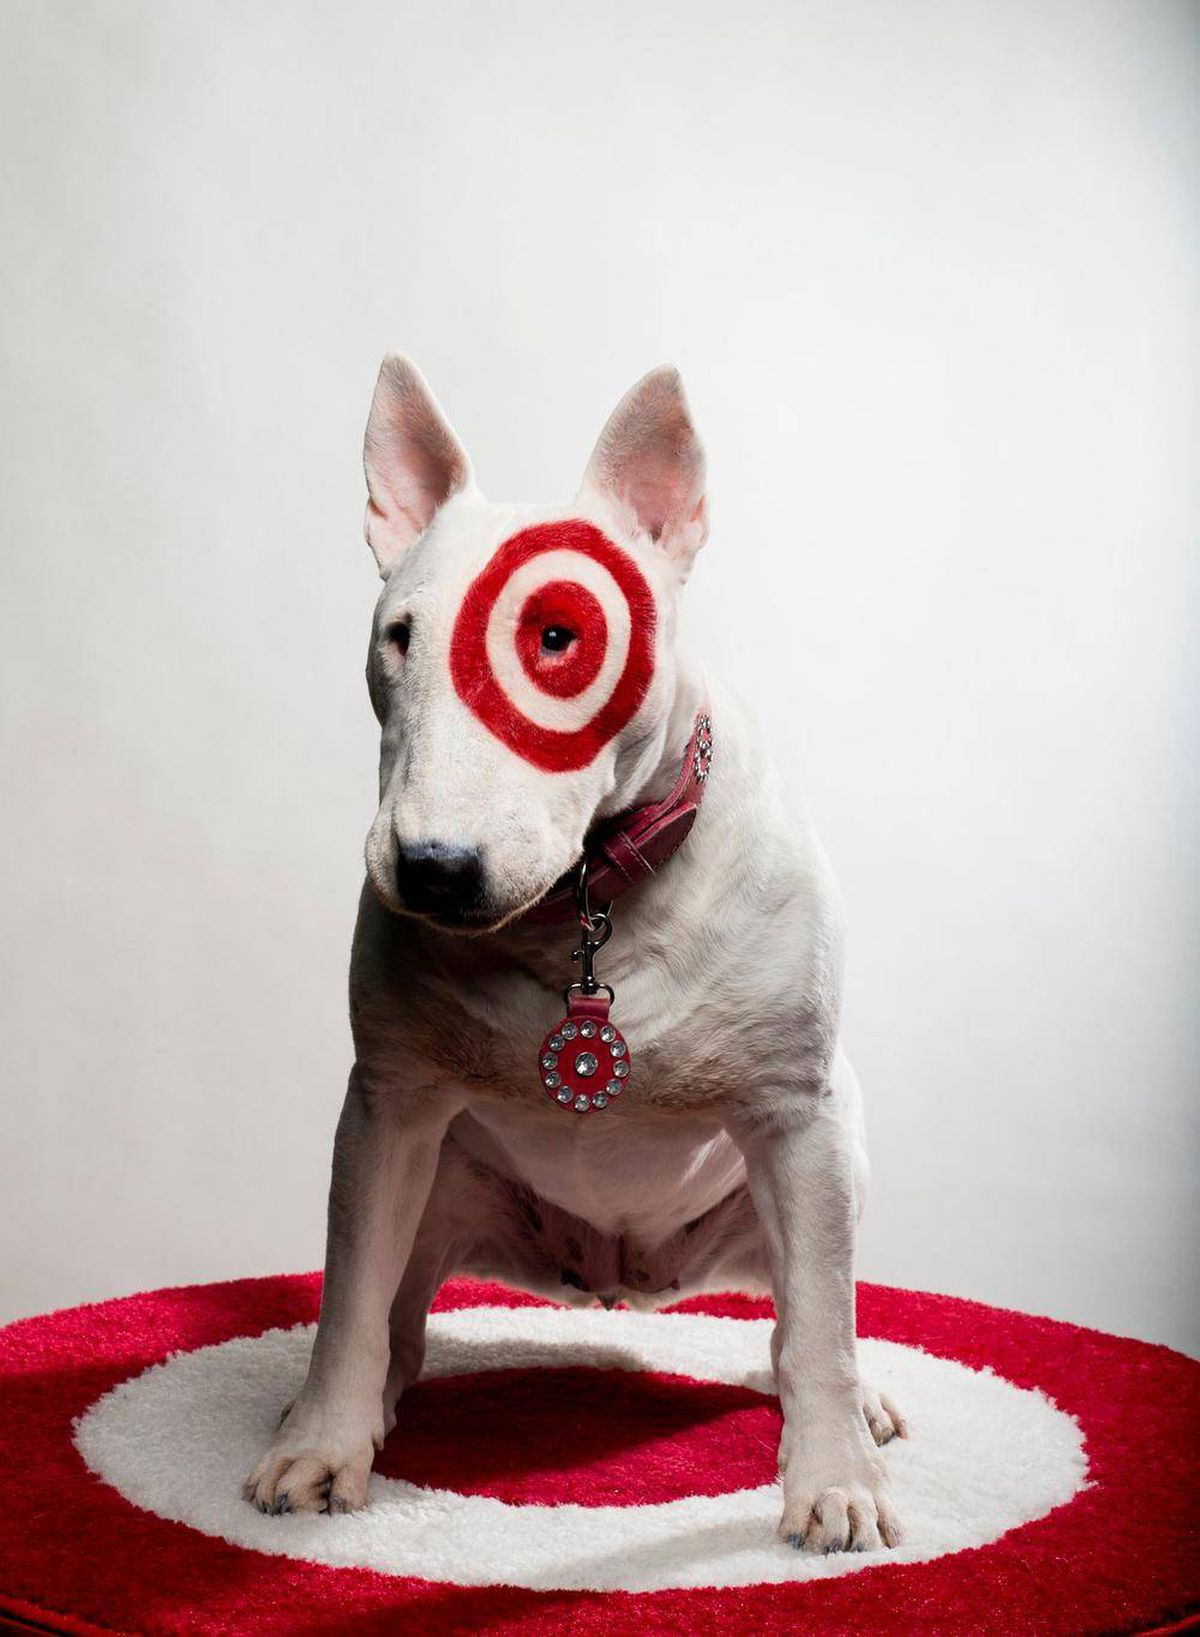 The secret life of target 39 s mascot bullseye the globe What kind of dog is the target mascot